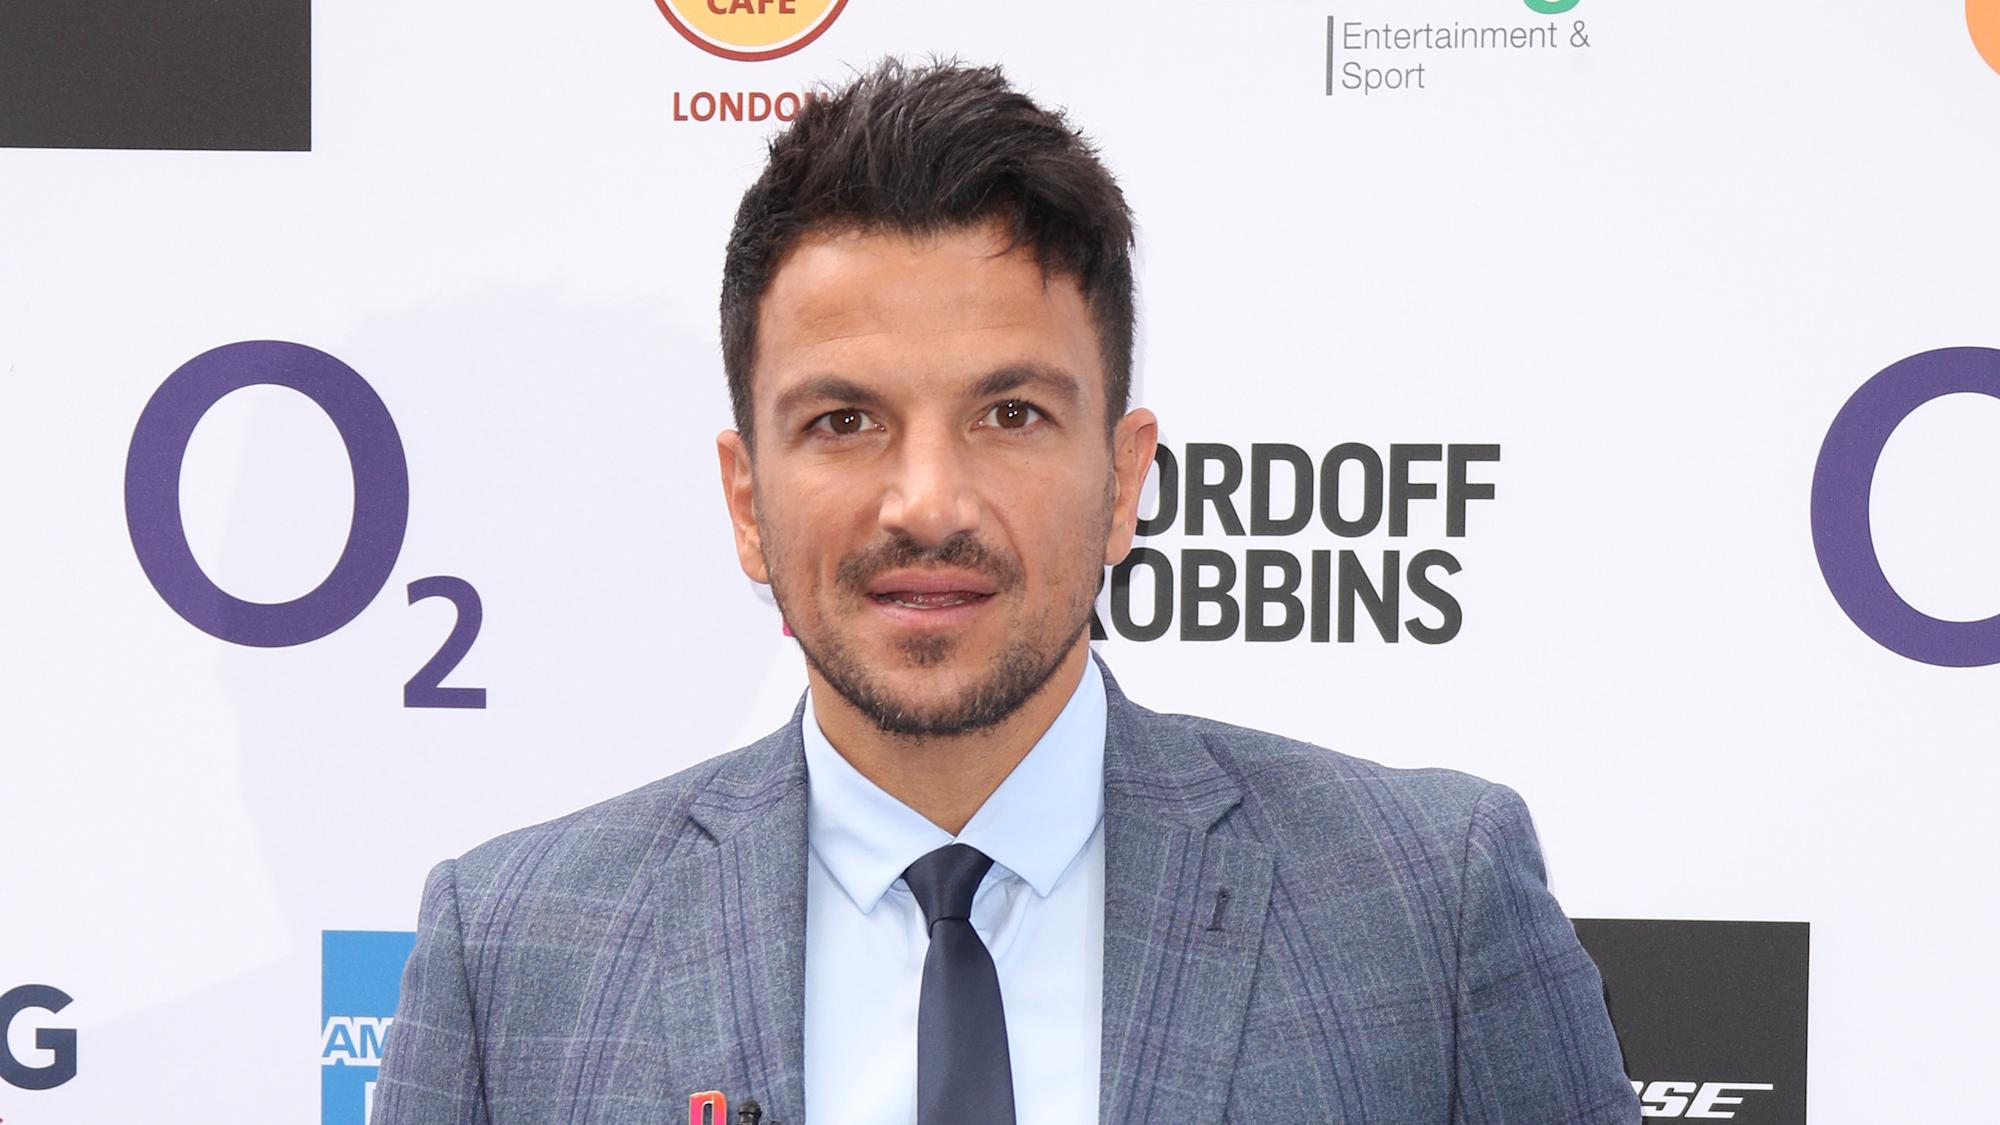 Peter Andre opens up on having plastic surgery due to racist bullying